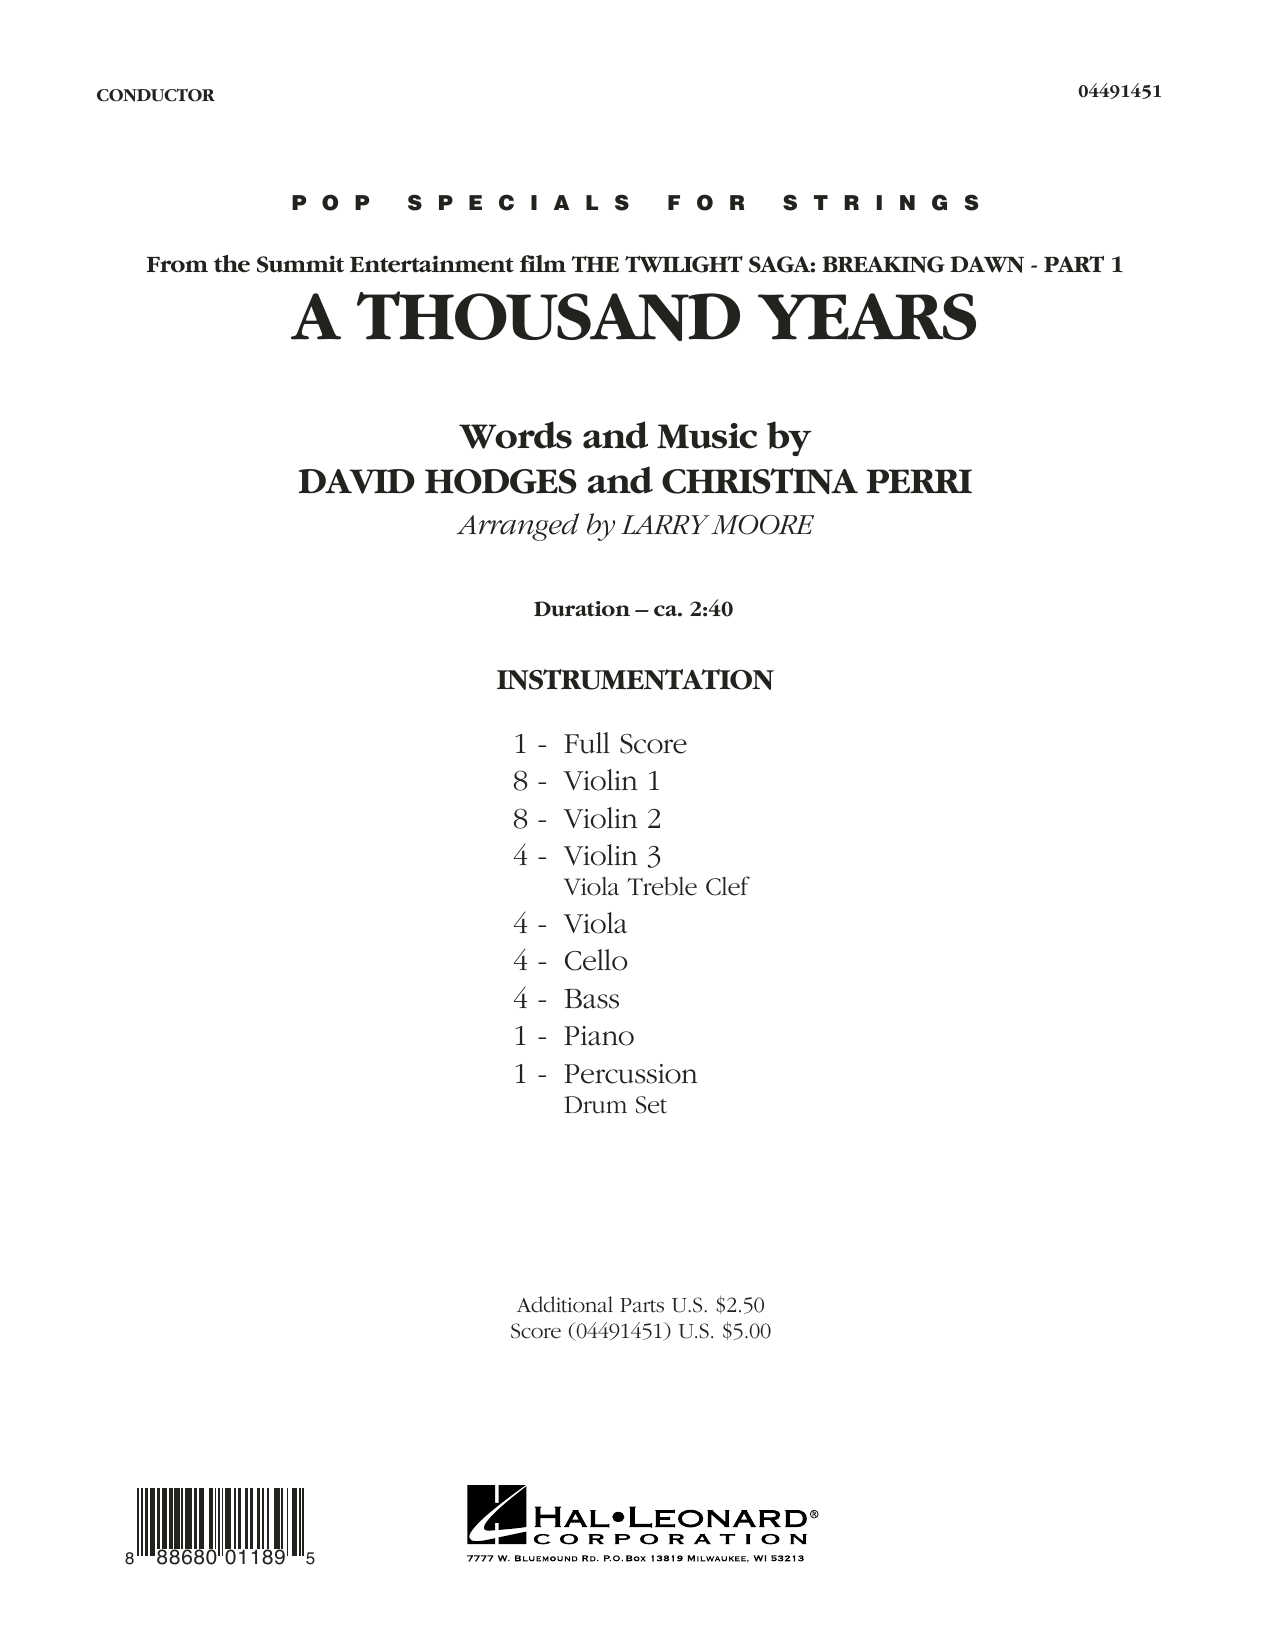 A Thousand Years (COMPLETE) sheet music for orchestra by Larry Moore, Christina Perri and David Hodges. Score Image Preview.